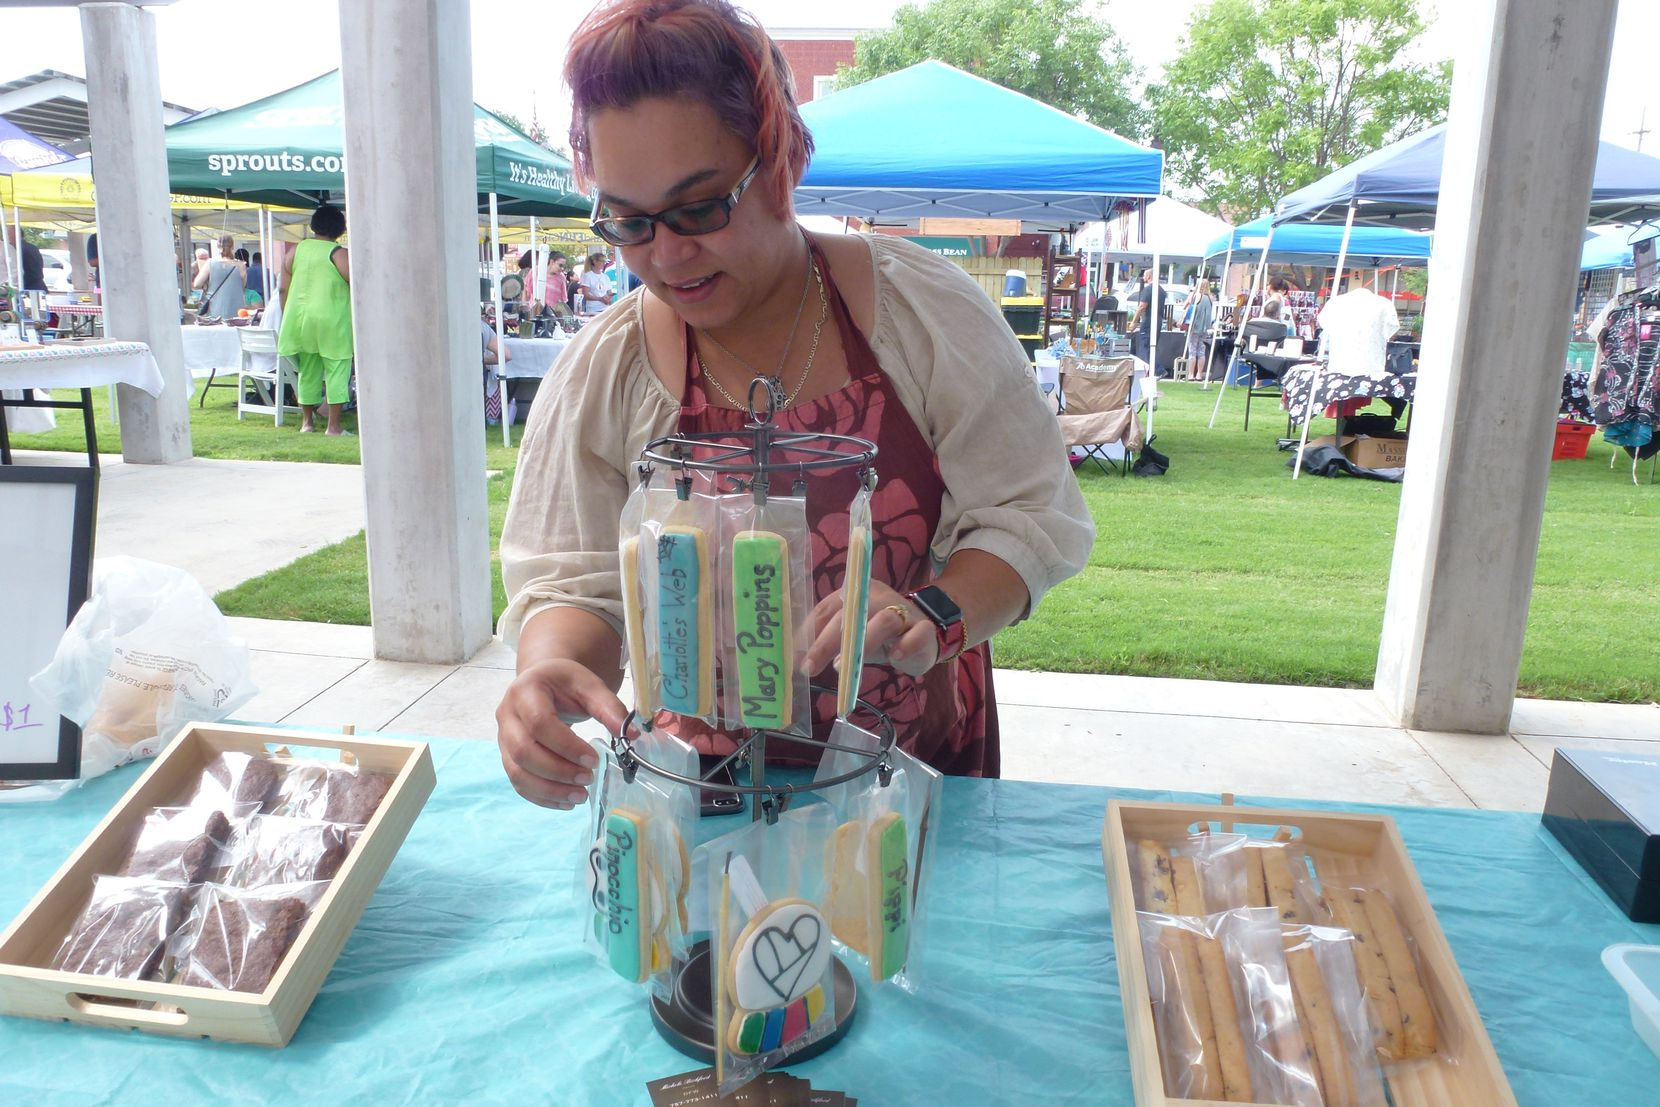 Michelle Bickford makes custom-designed sugar-cookie sticks, among other baked goodies, for her Emotions Made Edible bakery in Arlington.